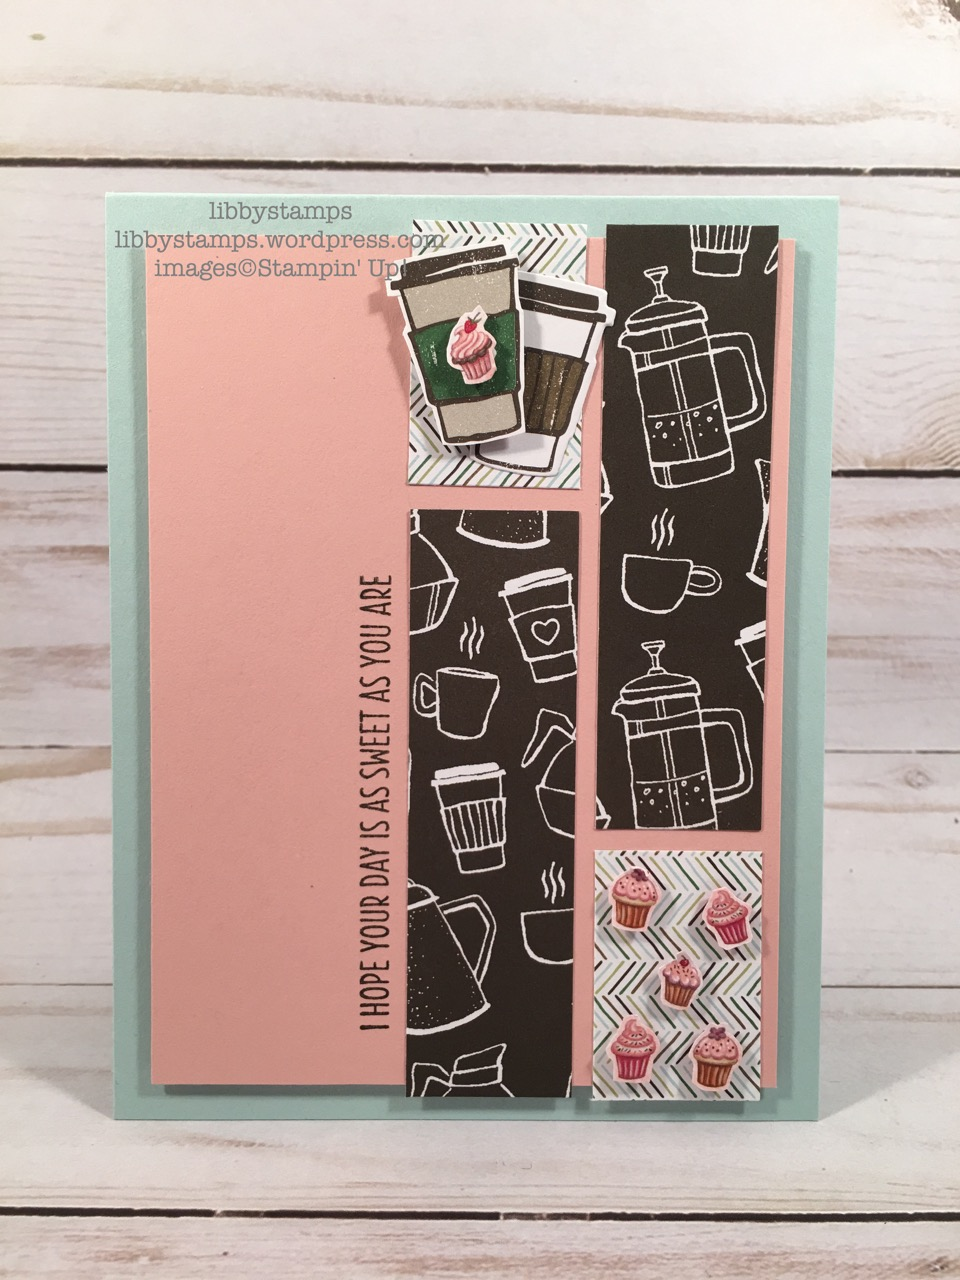 libbystamps, stampin up, Cool Treats, Coffee Cups Framelits, Coffee Break DSP, Birthday Memories DSP, TSOT, Addicted to CAS #135